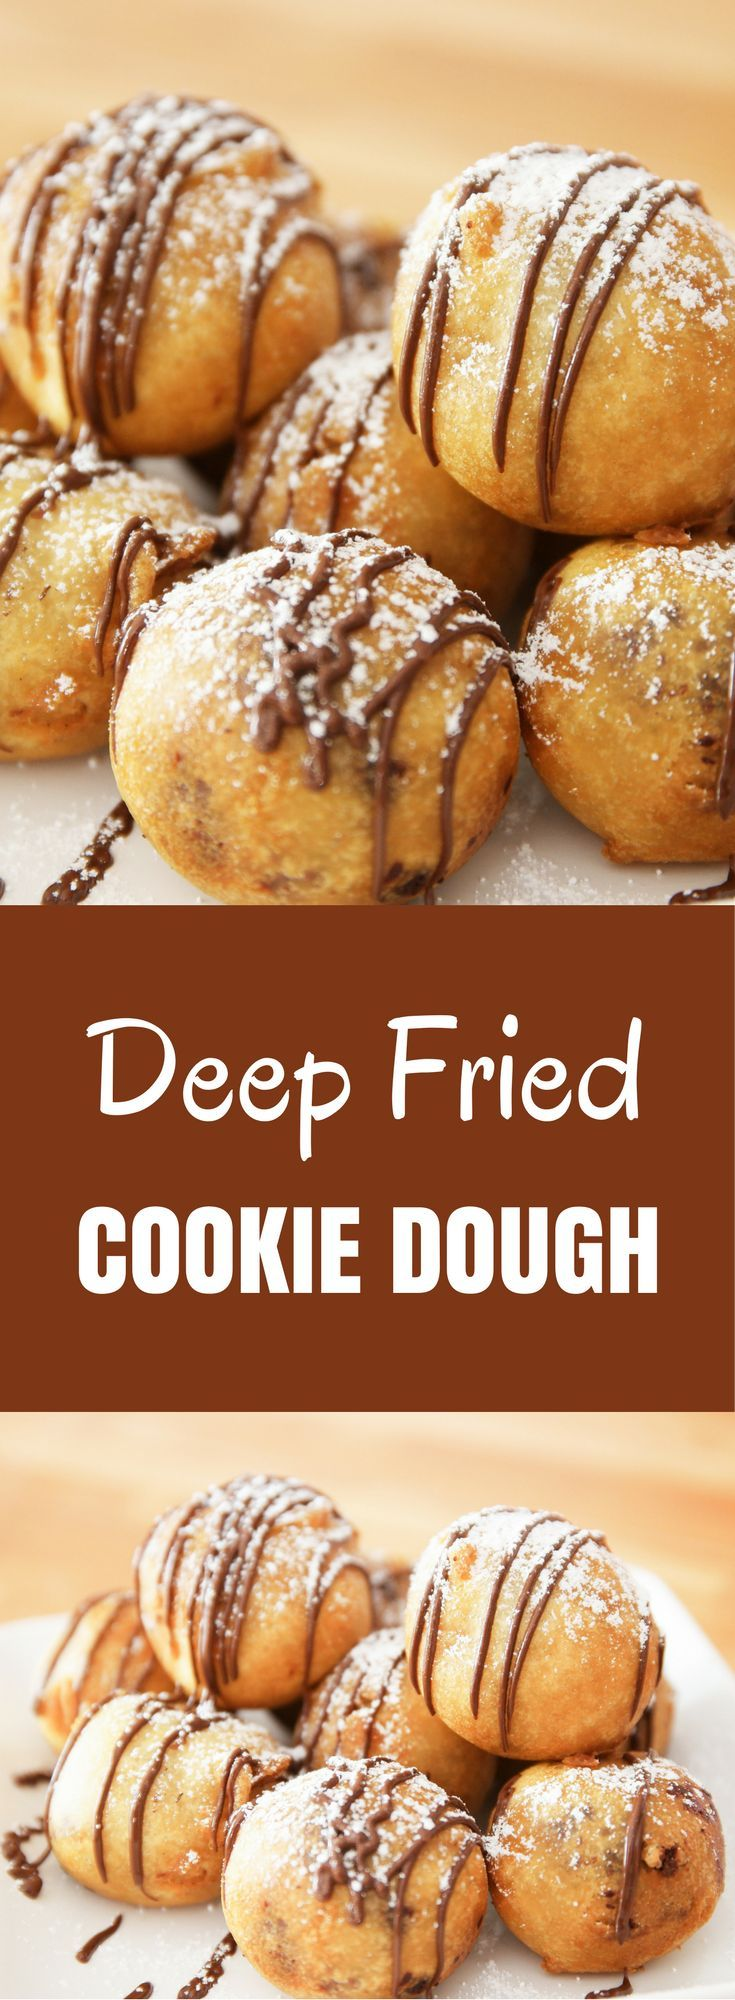 Deep Fried Cookie Dough is an unusual way to cook your favorite cookie dough. It's fun and tasty, and perfect for a special party!